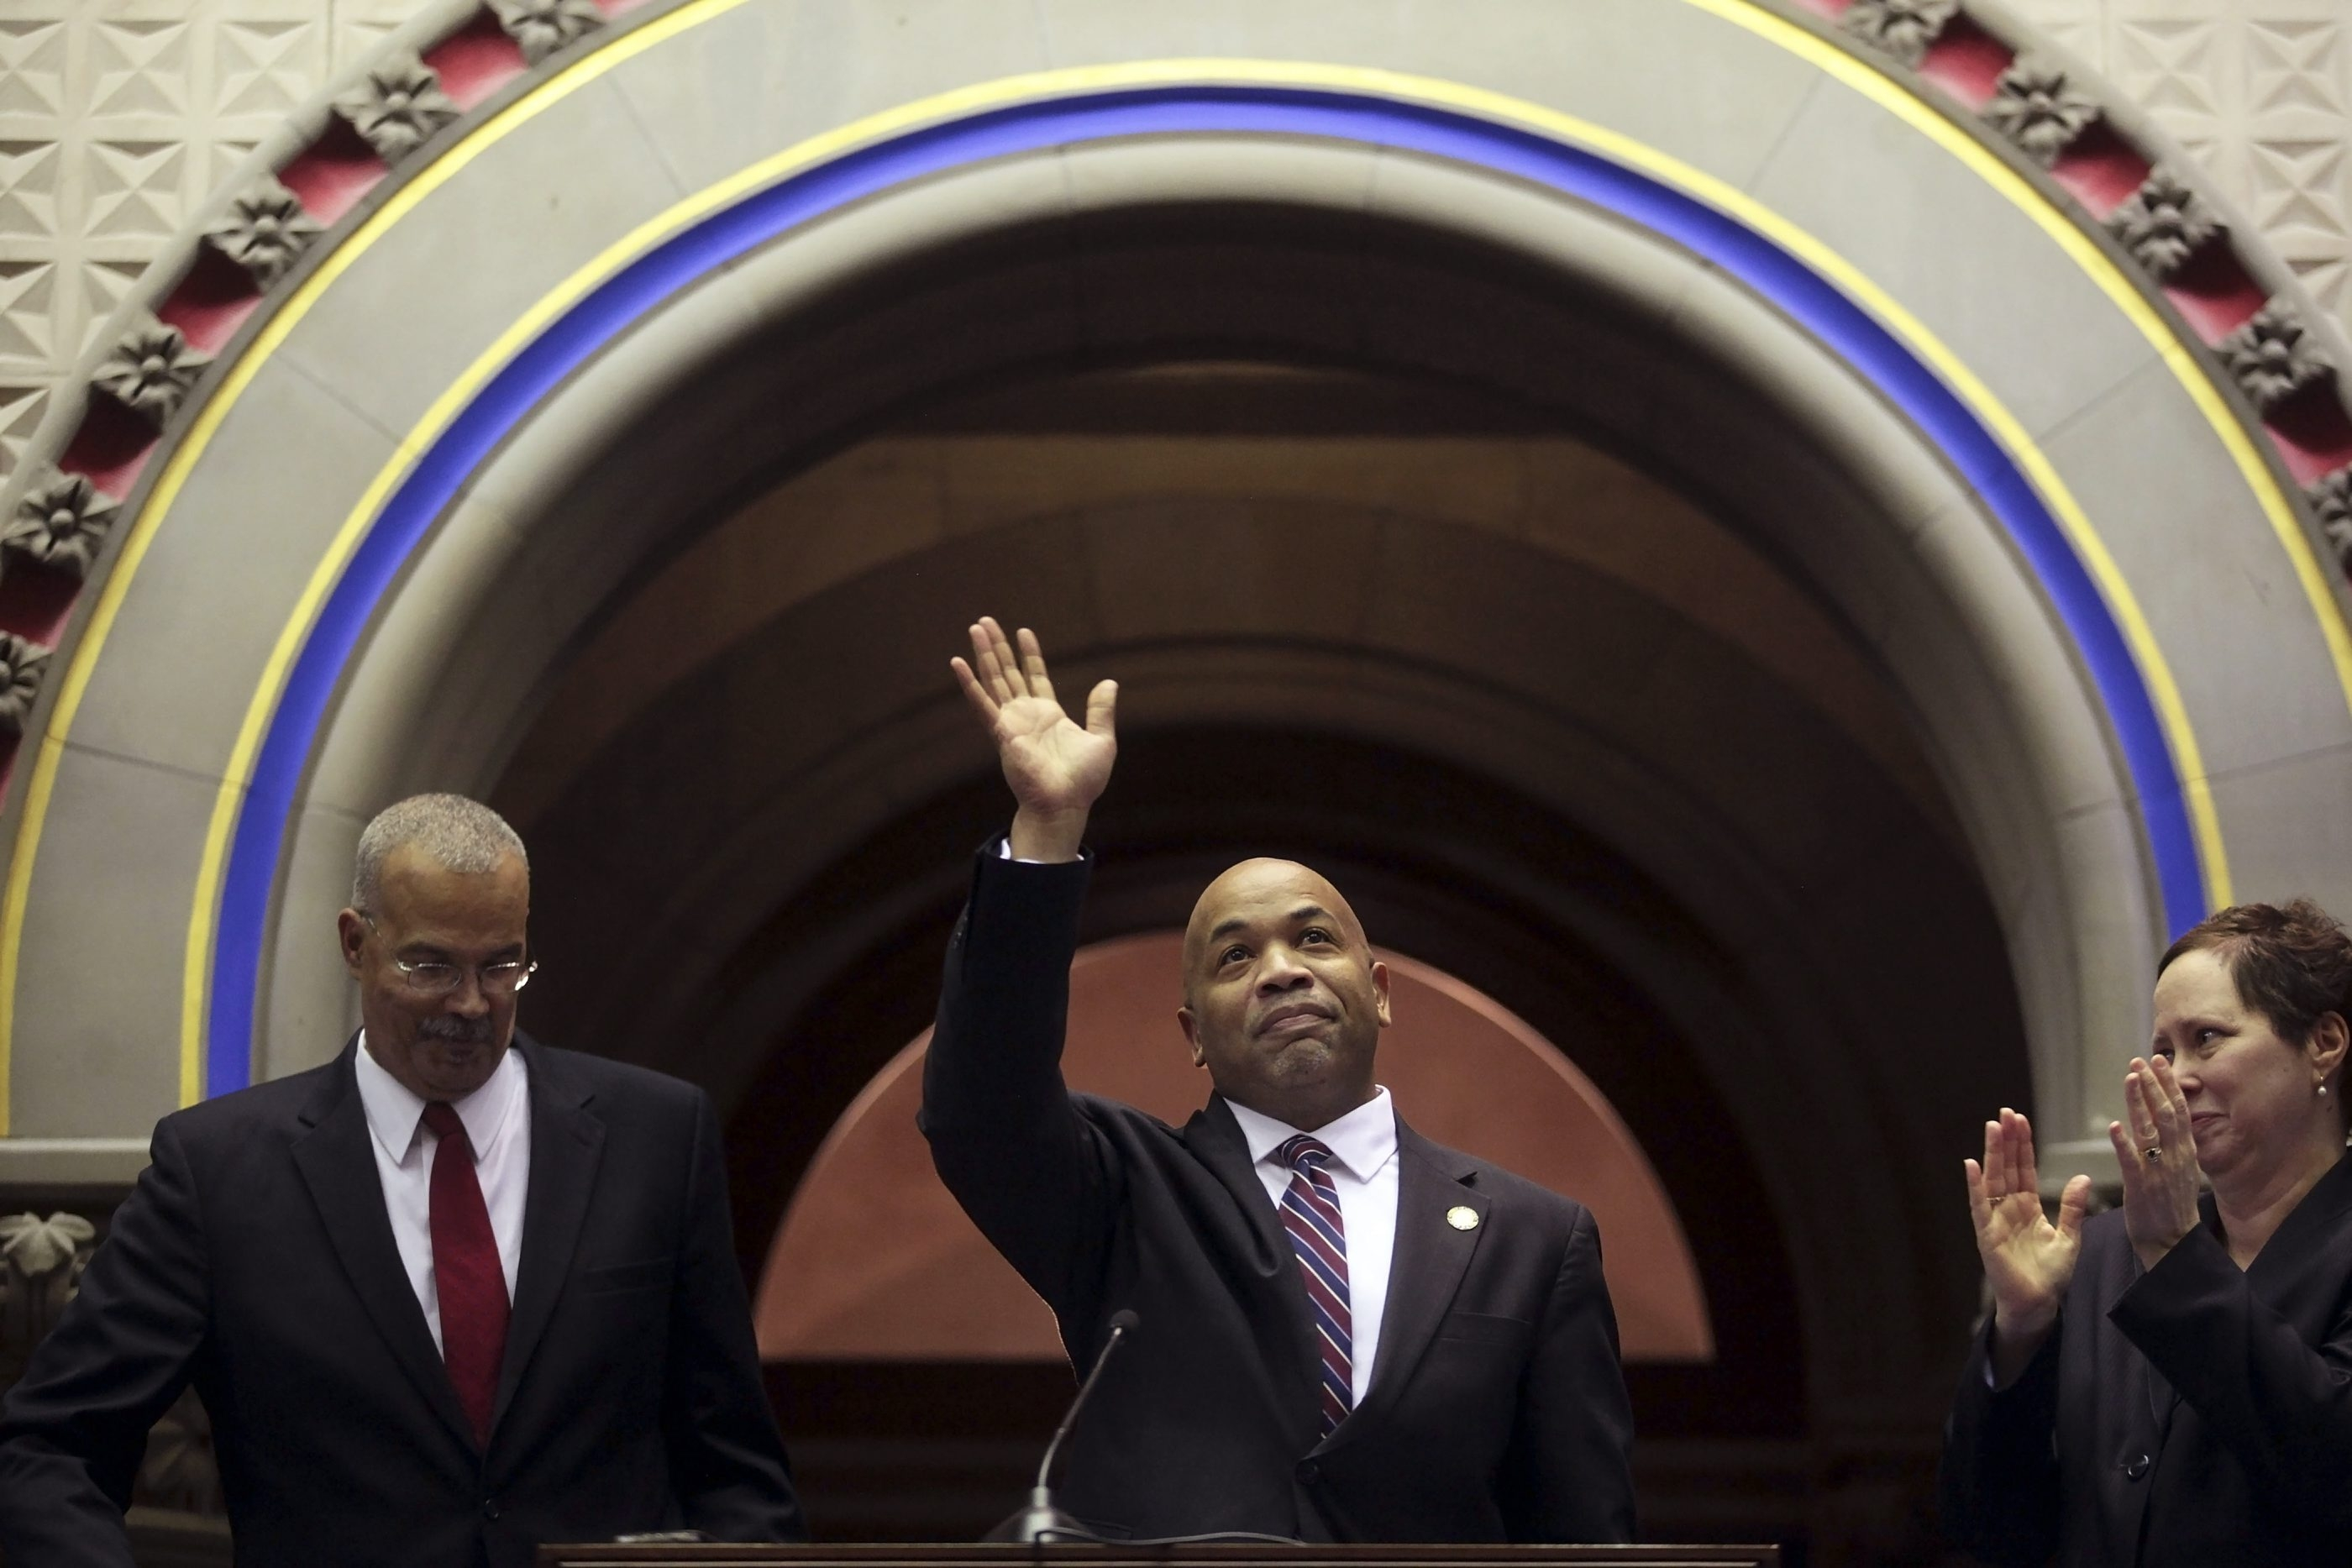 Carl Heastie has seen a big increase in fundraising since becoming speaker.